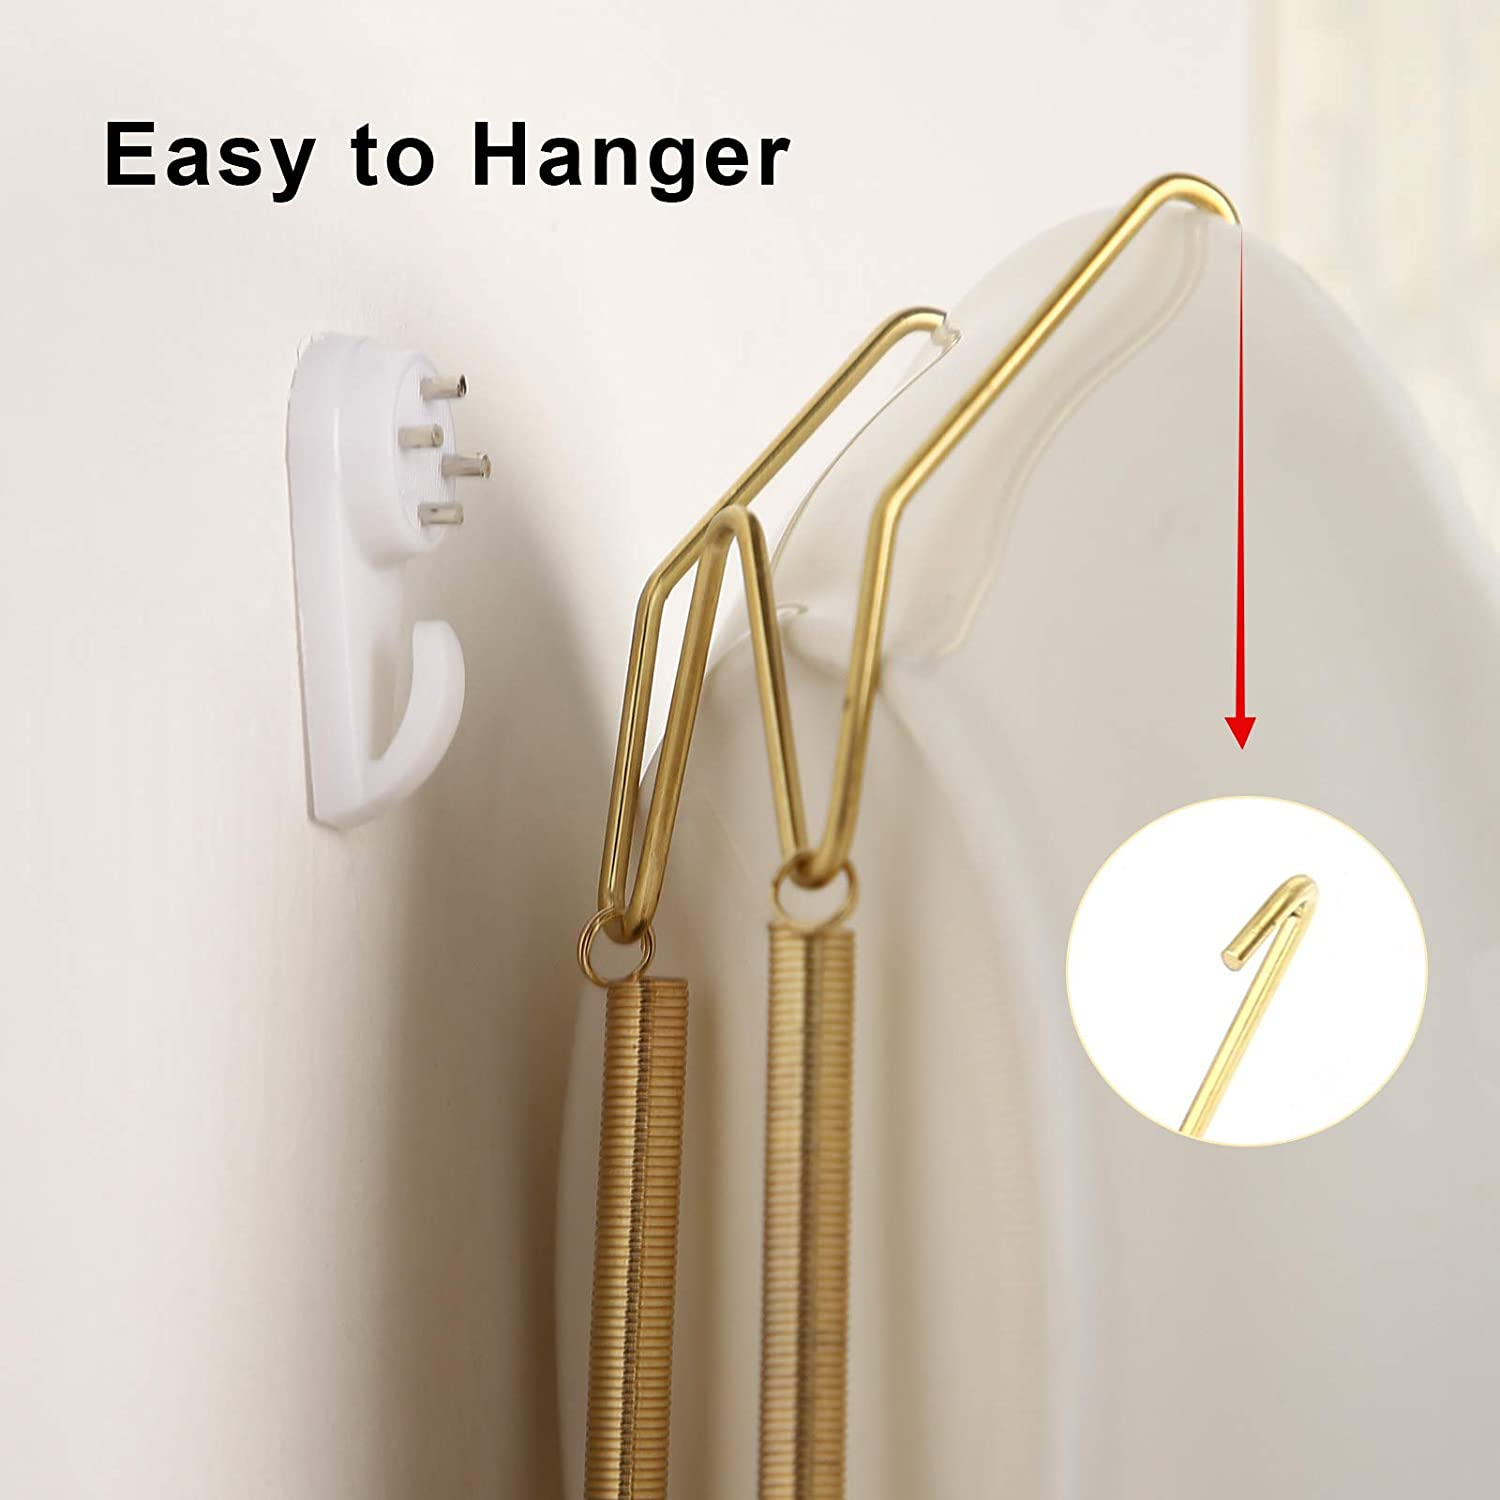 12 Pcs Plate Hangers for the Wall 6 Inch Wall Plate Hangers Decorative Plate Holder Hangers for Decorative Plates Antique China Antique Plates Arts with 12 Pcs Wall Hooks